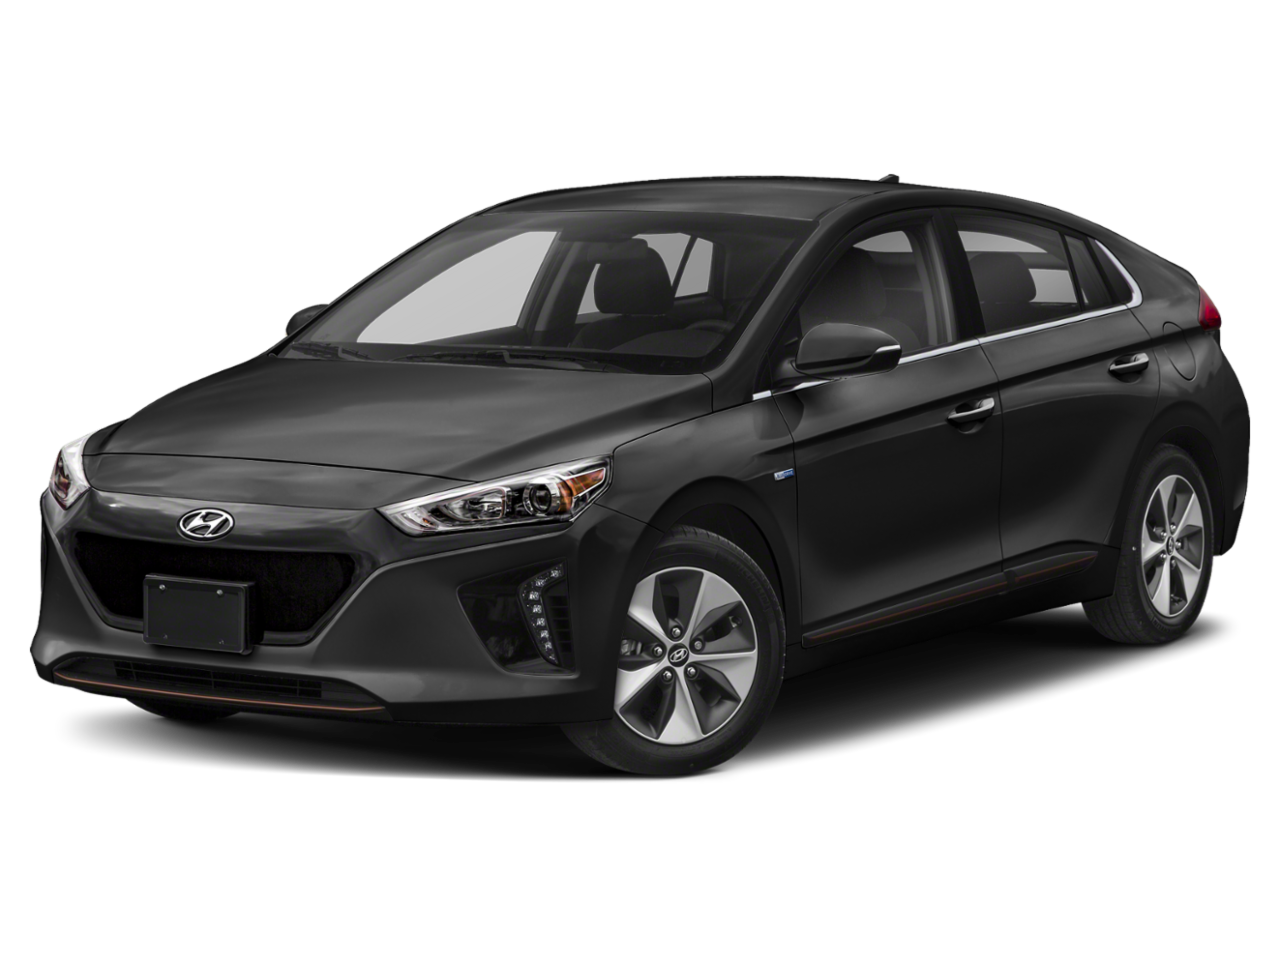 Hyundai 2019 IONIQ Electric Hatchback